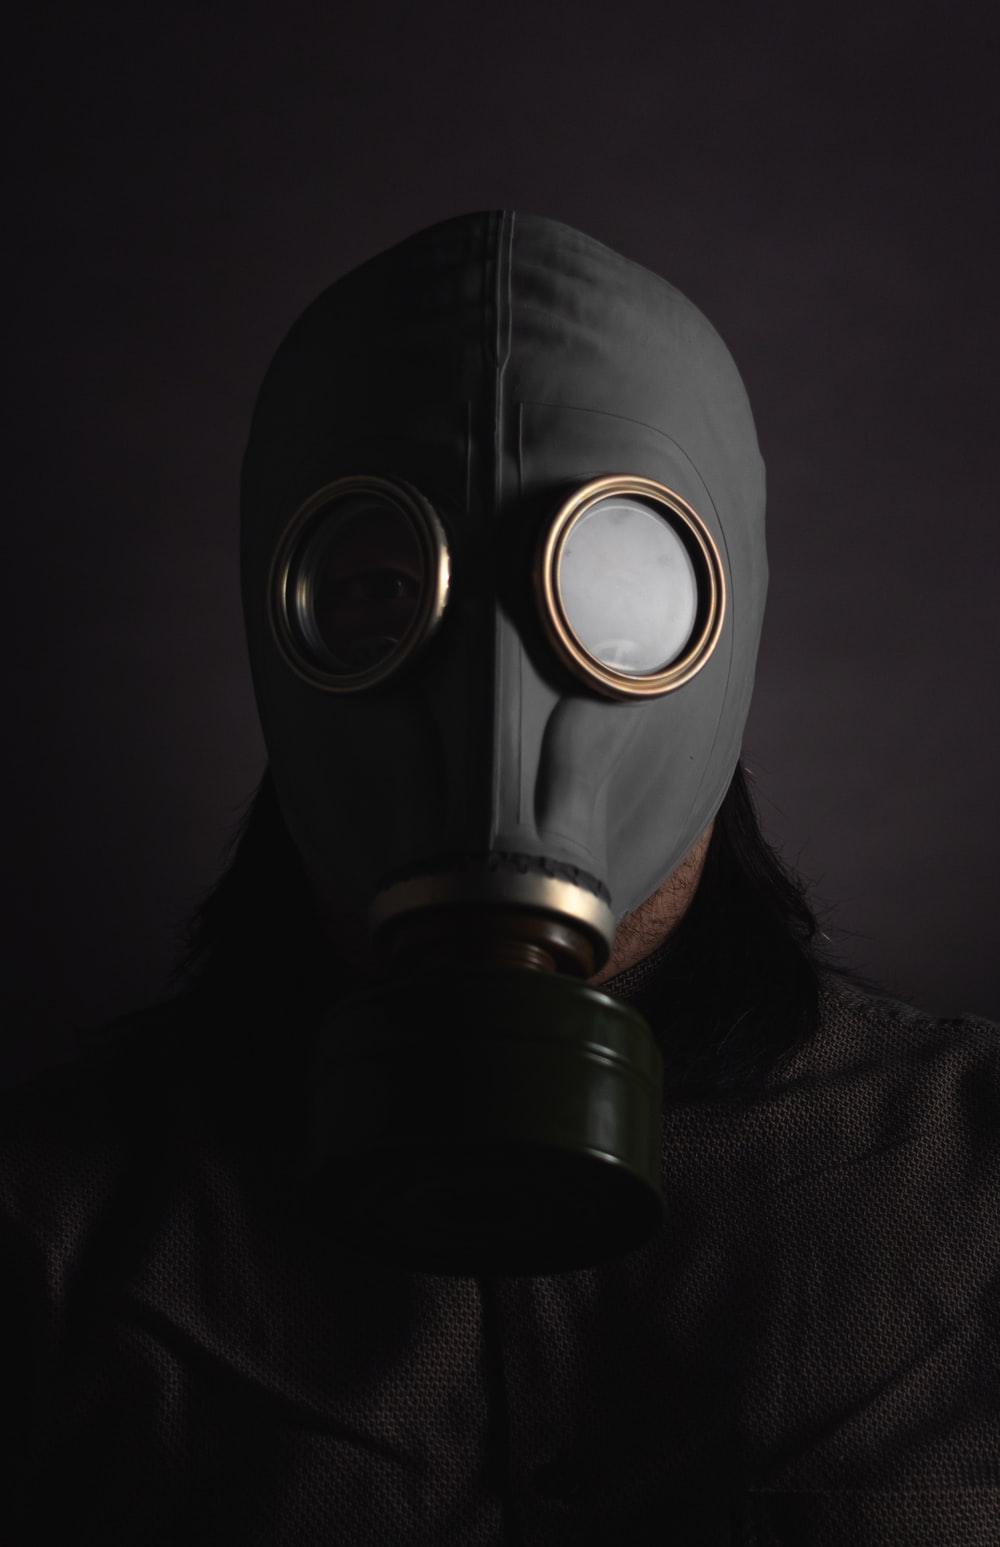 person wearing black gas mask